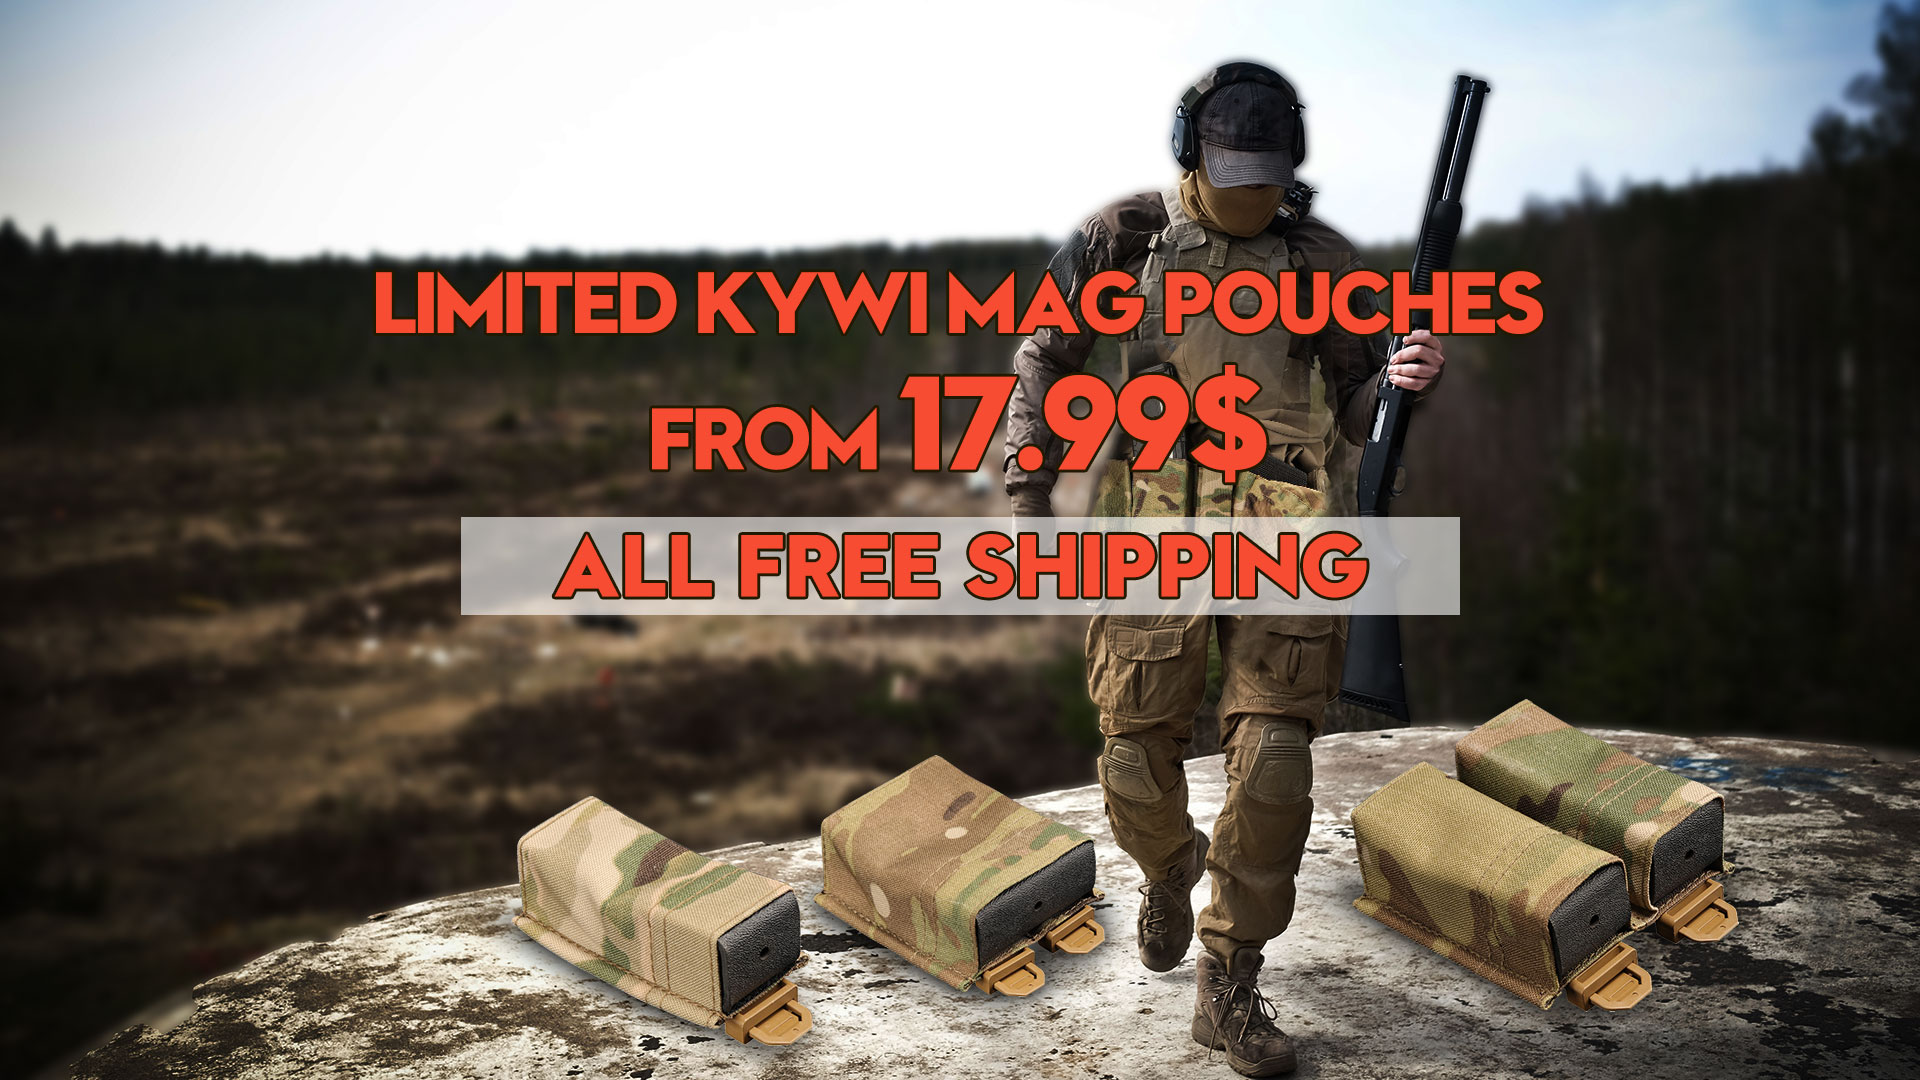 All free shipping for KYWI mag pouches deals